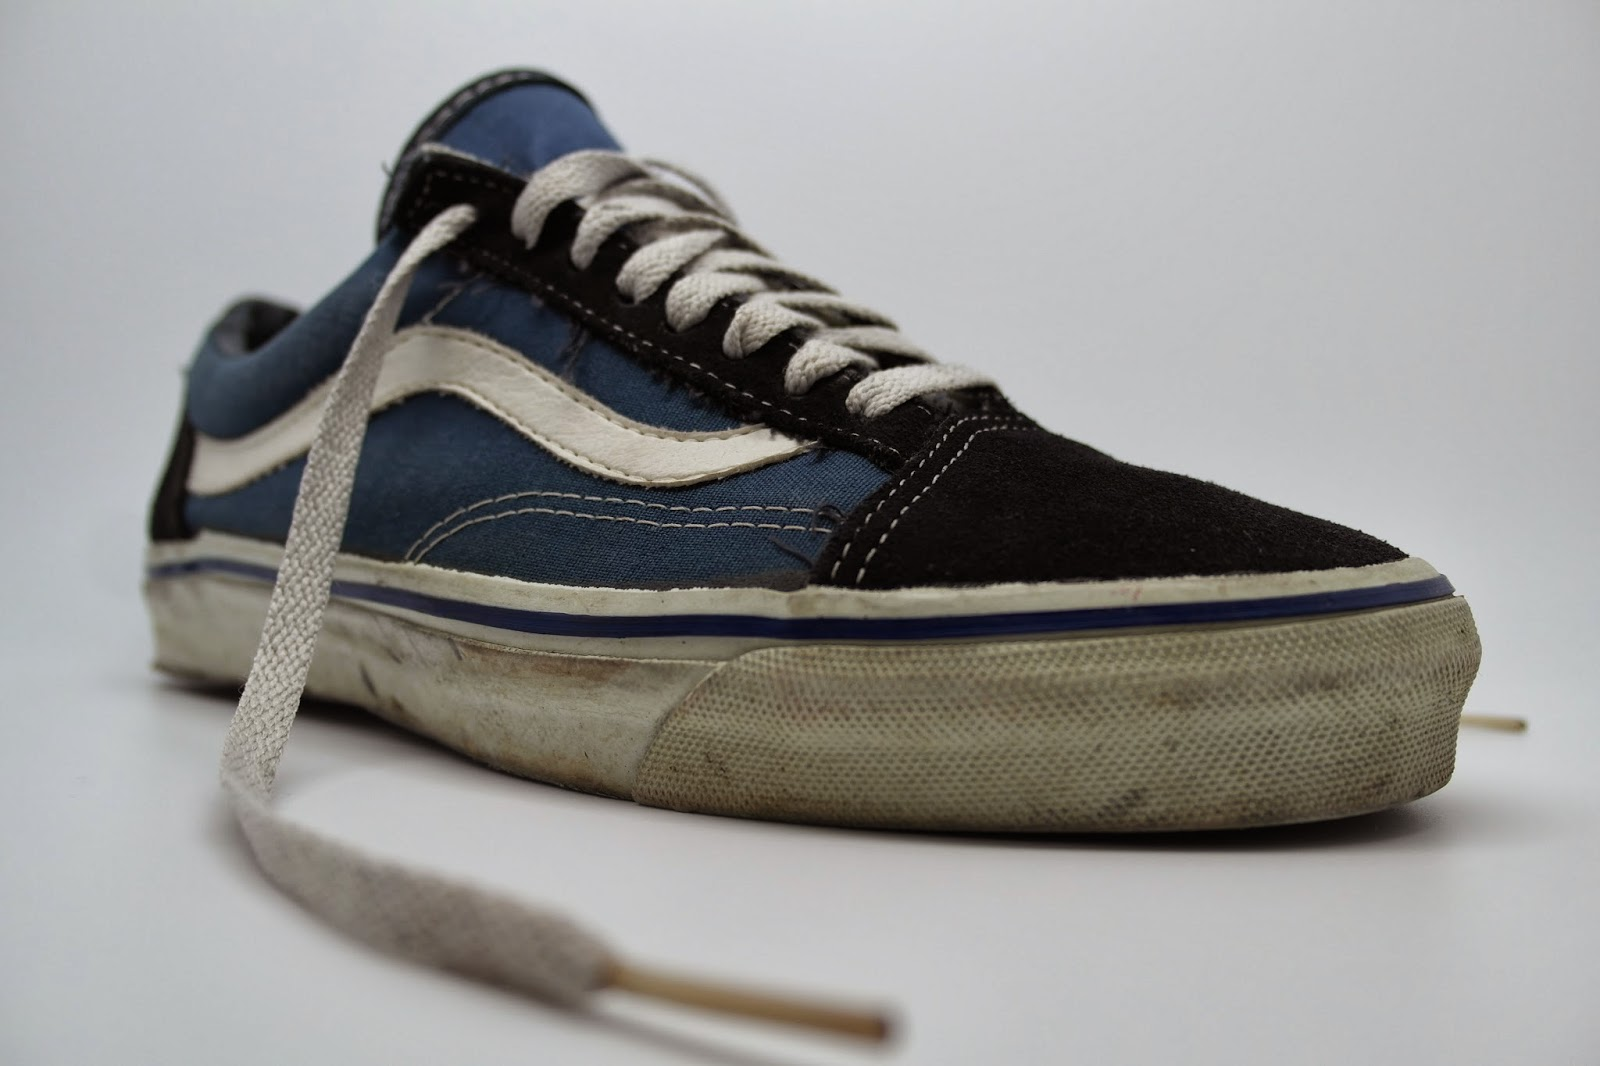 vans old skool navy original